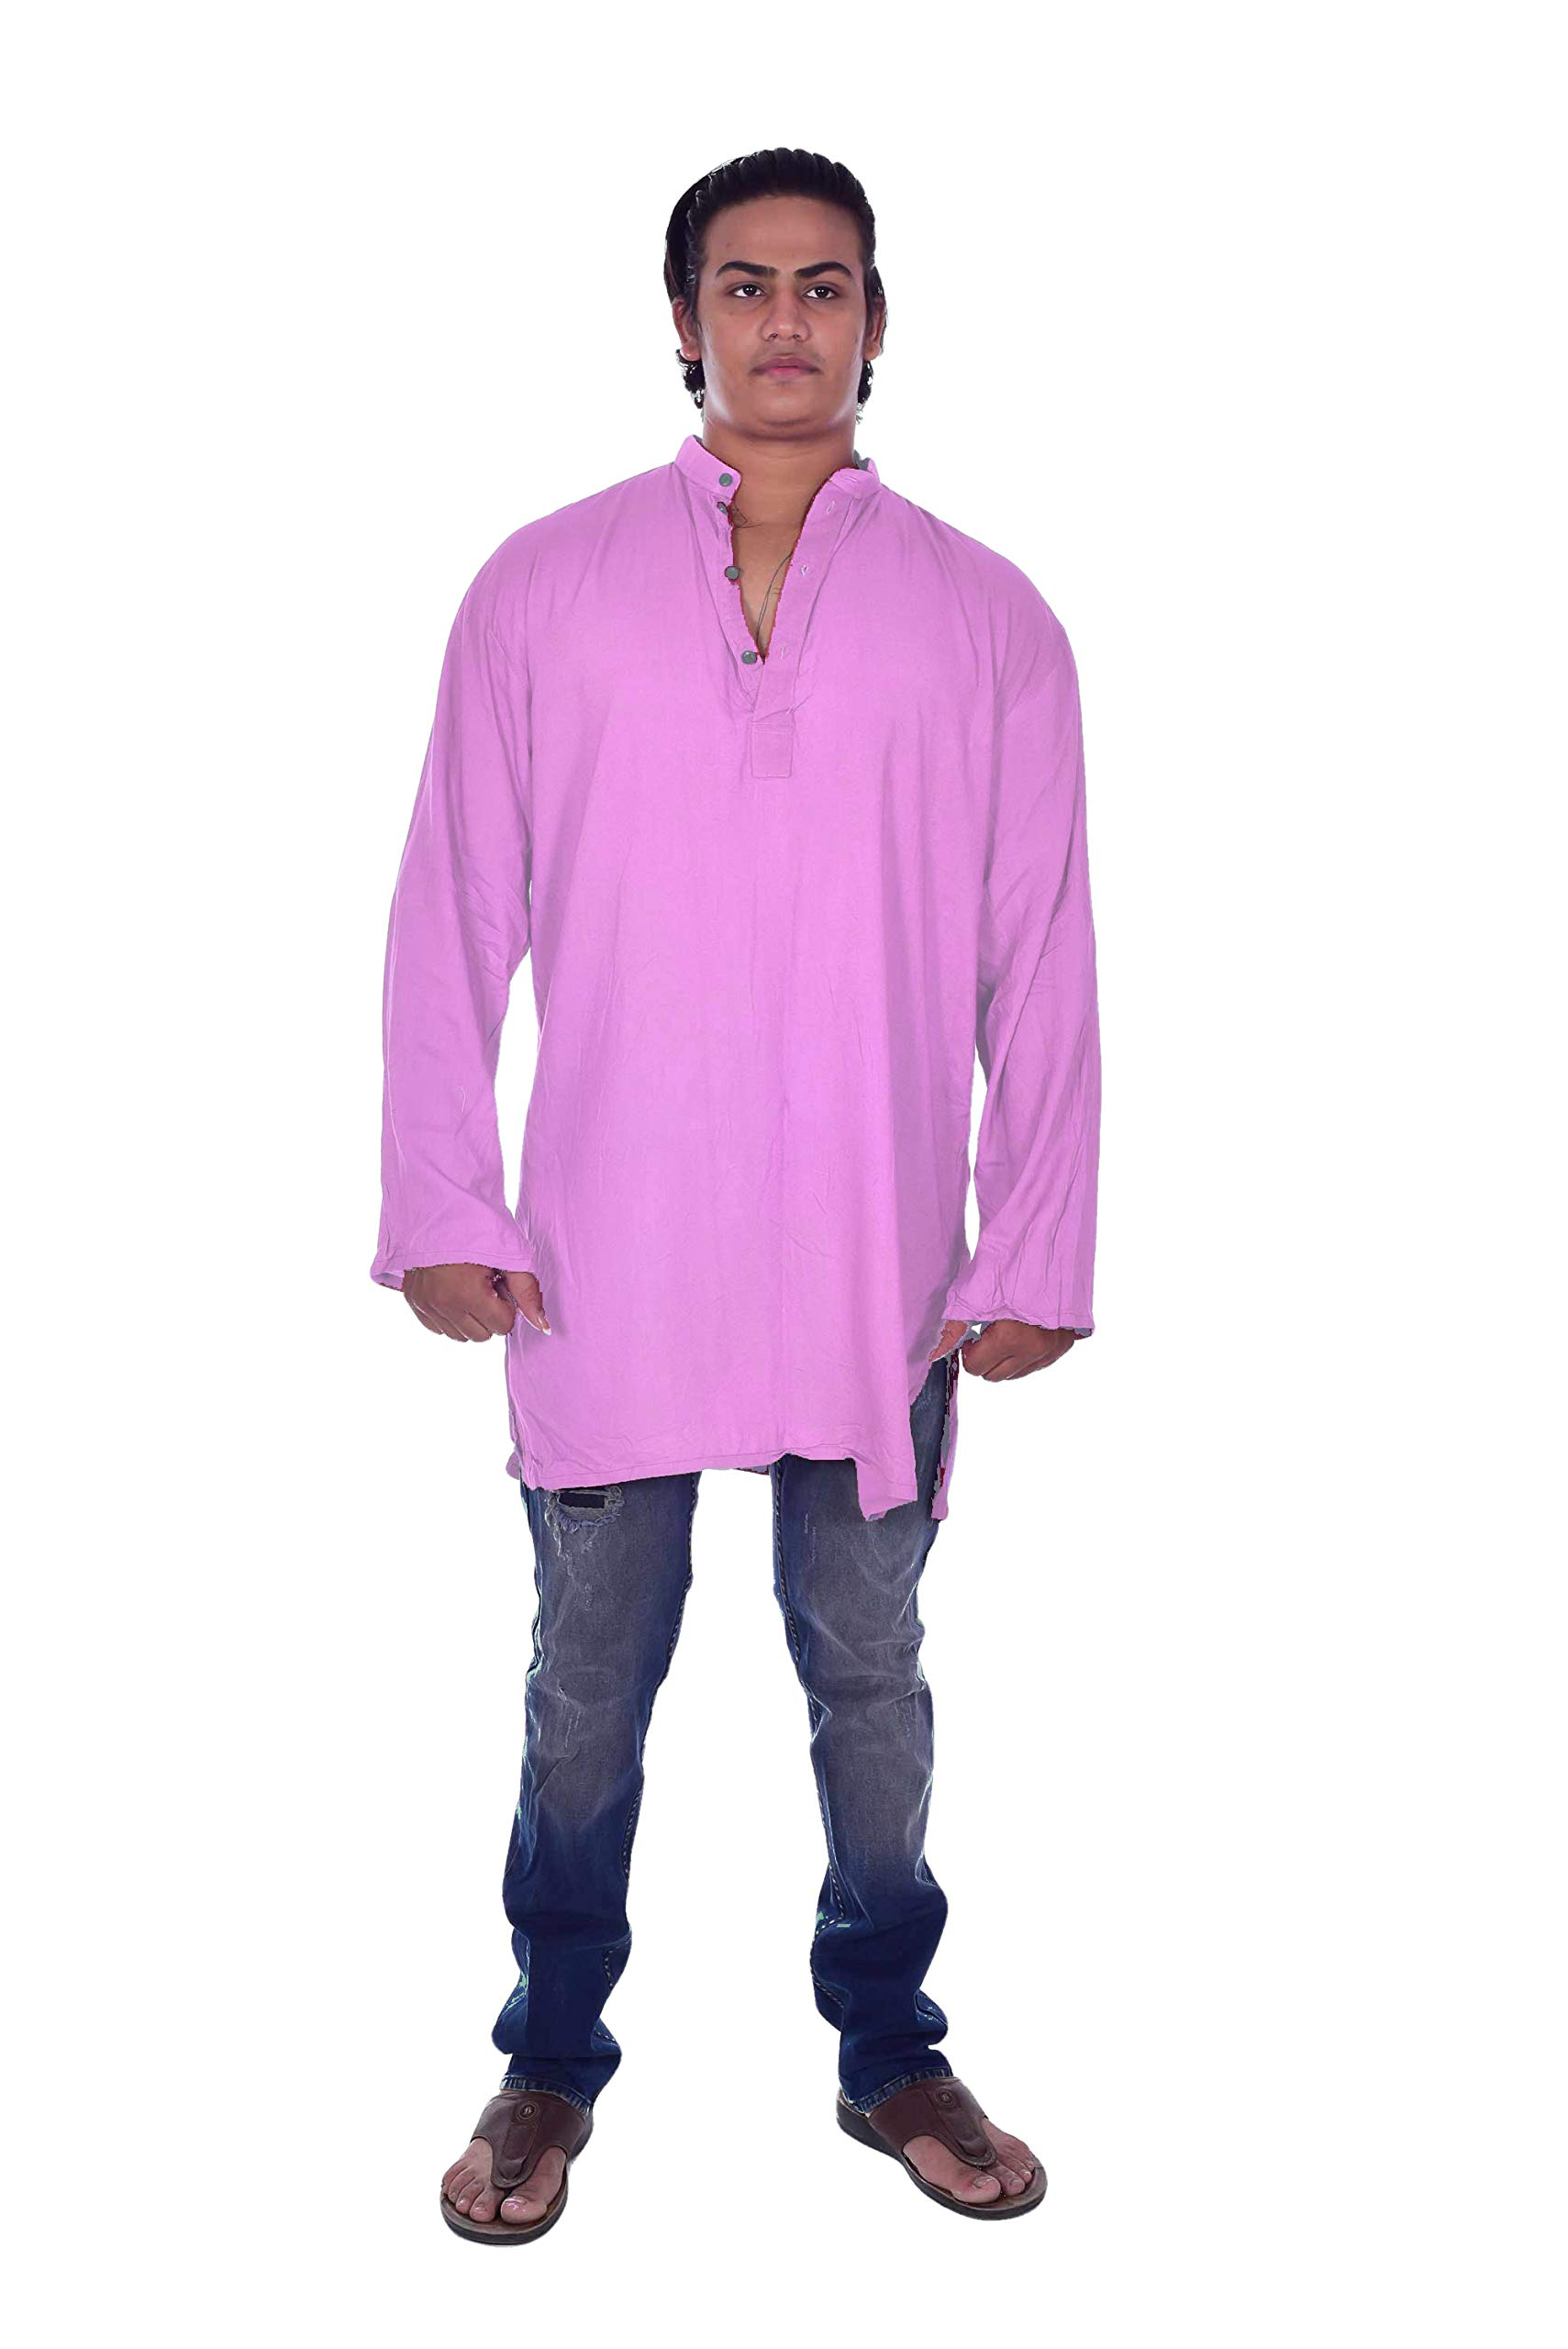 Lakkar Havali Indian 100/% Cotton Mens Shirt Tunic Loose Fit Solid Kurta Plus Size Sky Blue Color Length 36